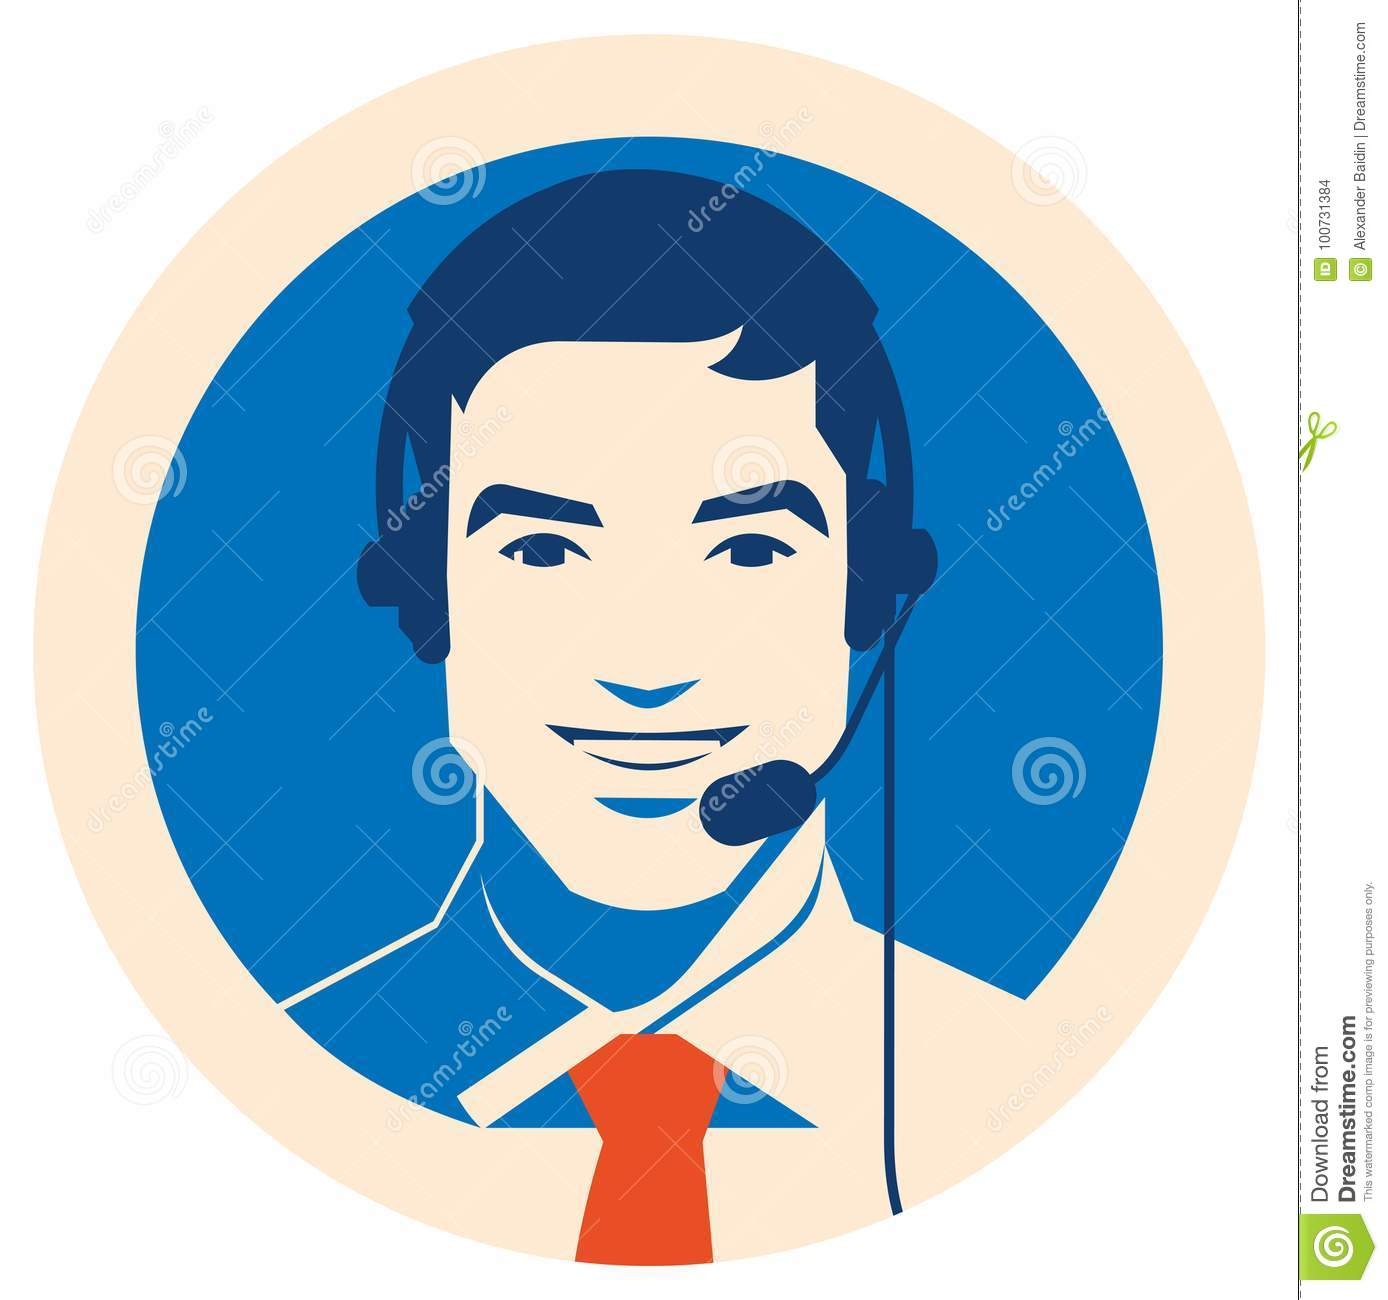 Call Center Operator With Headset Icon. Client Services